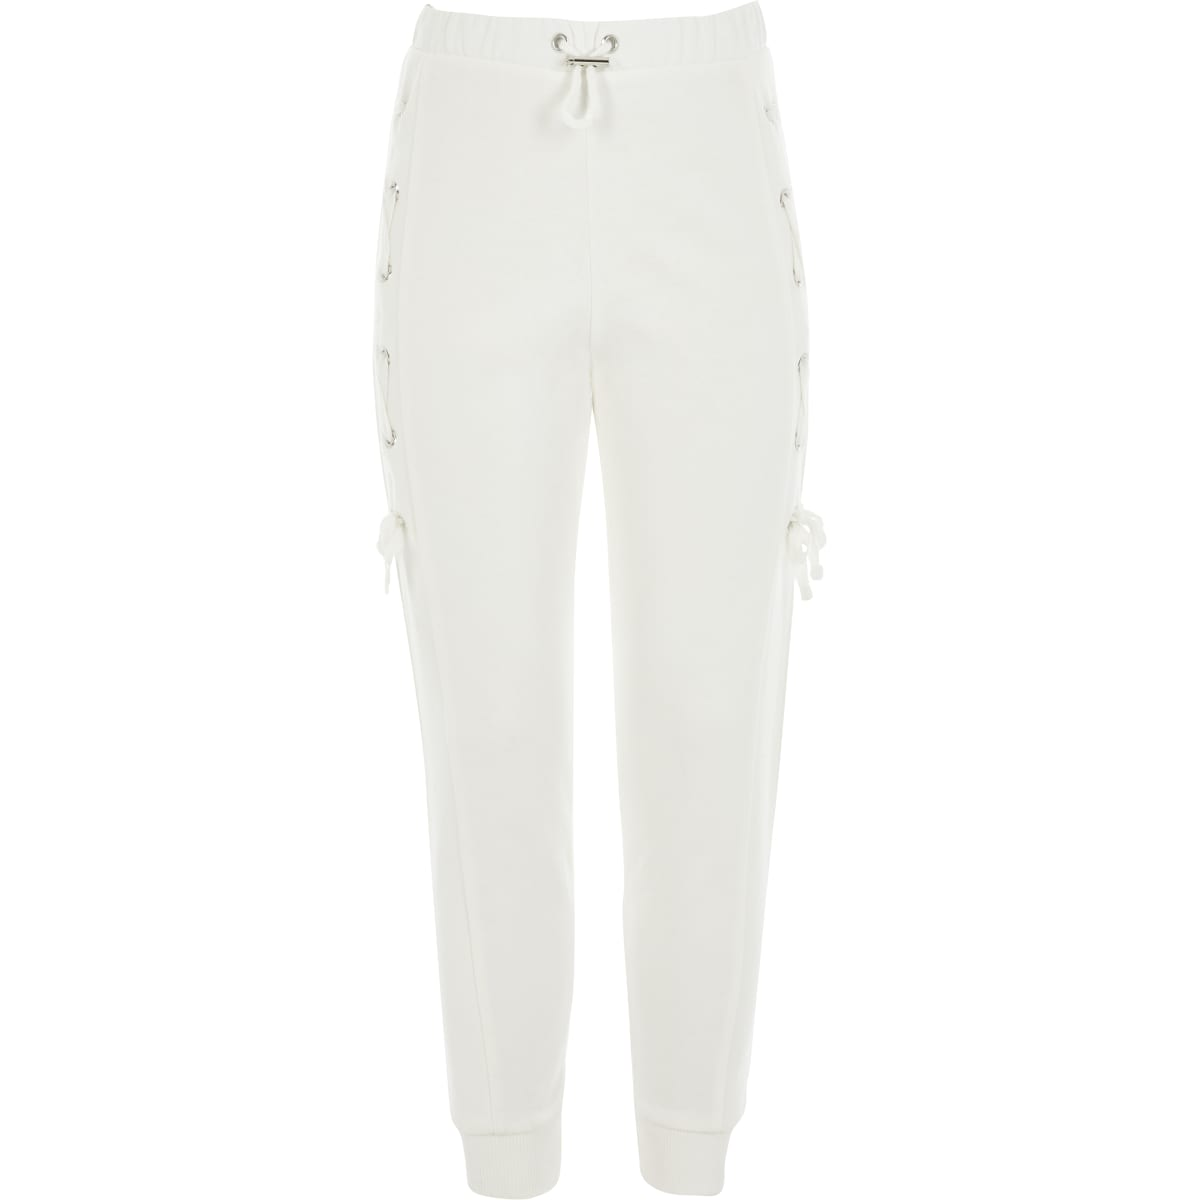 Girls white lace-up side joggers